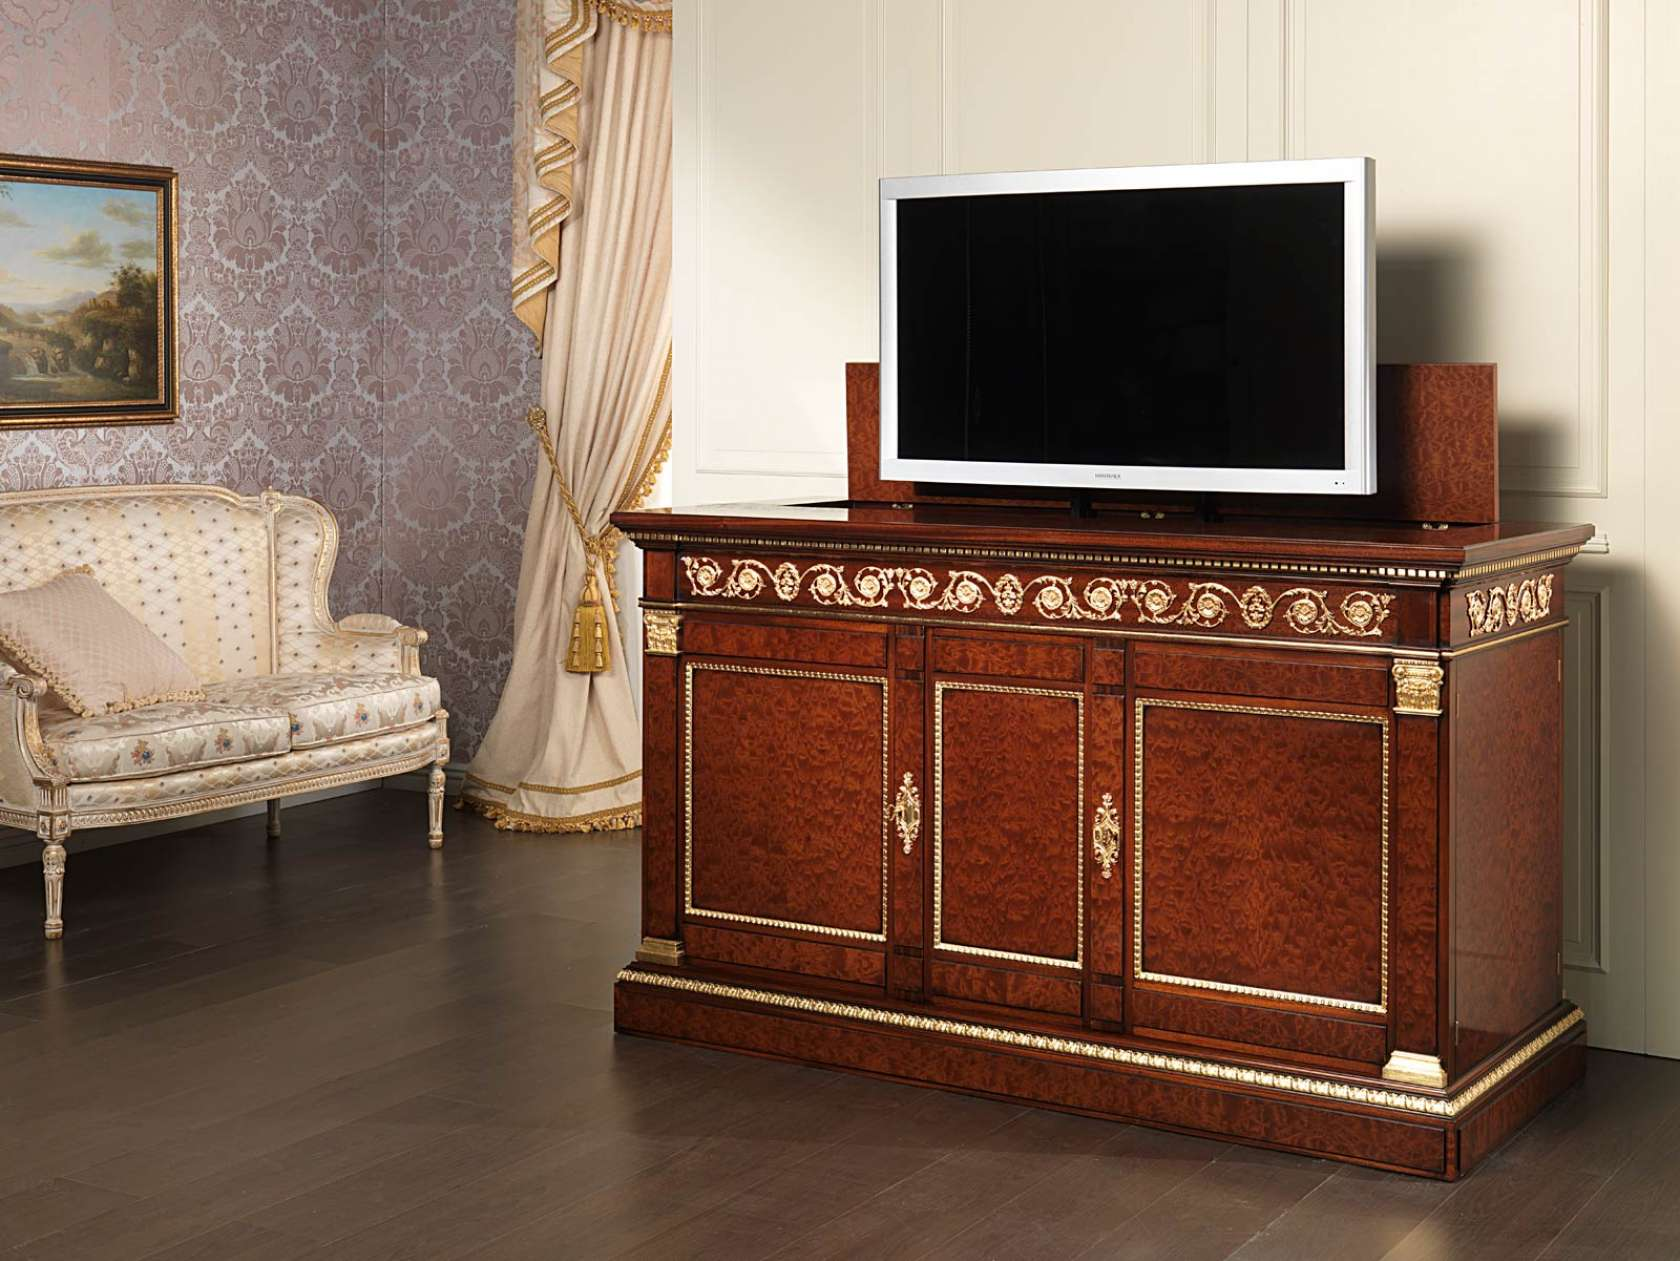 meuble tv en acajou style empire vimercati classic furniture. Black Bedroom Furniture Sets. Home Design Ideas